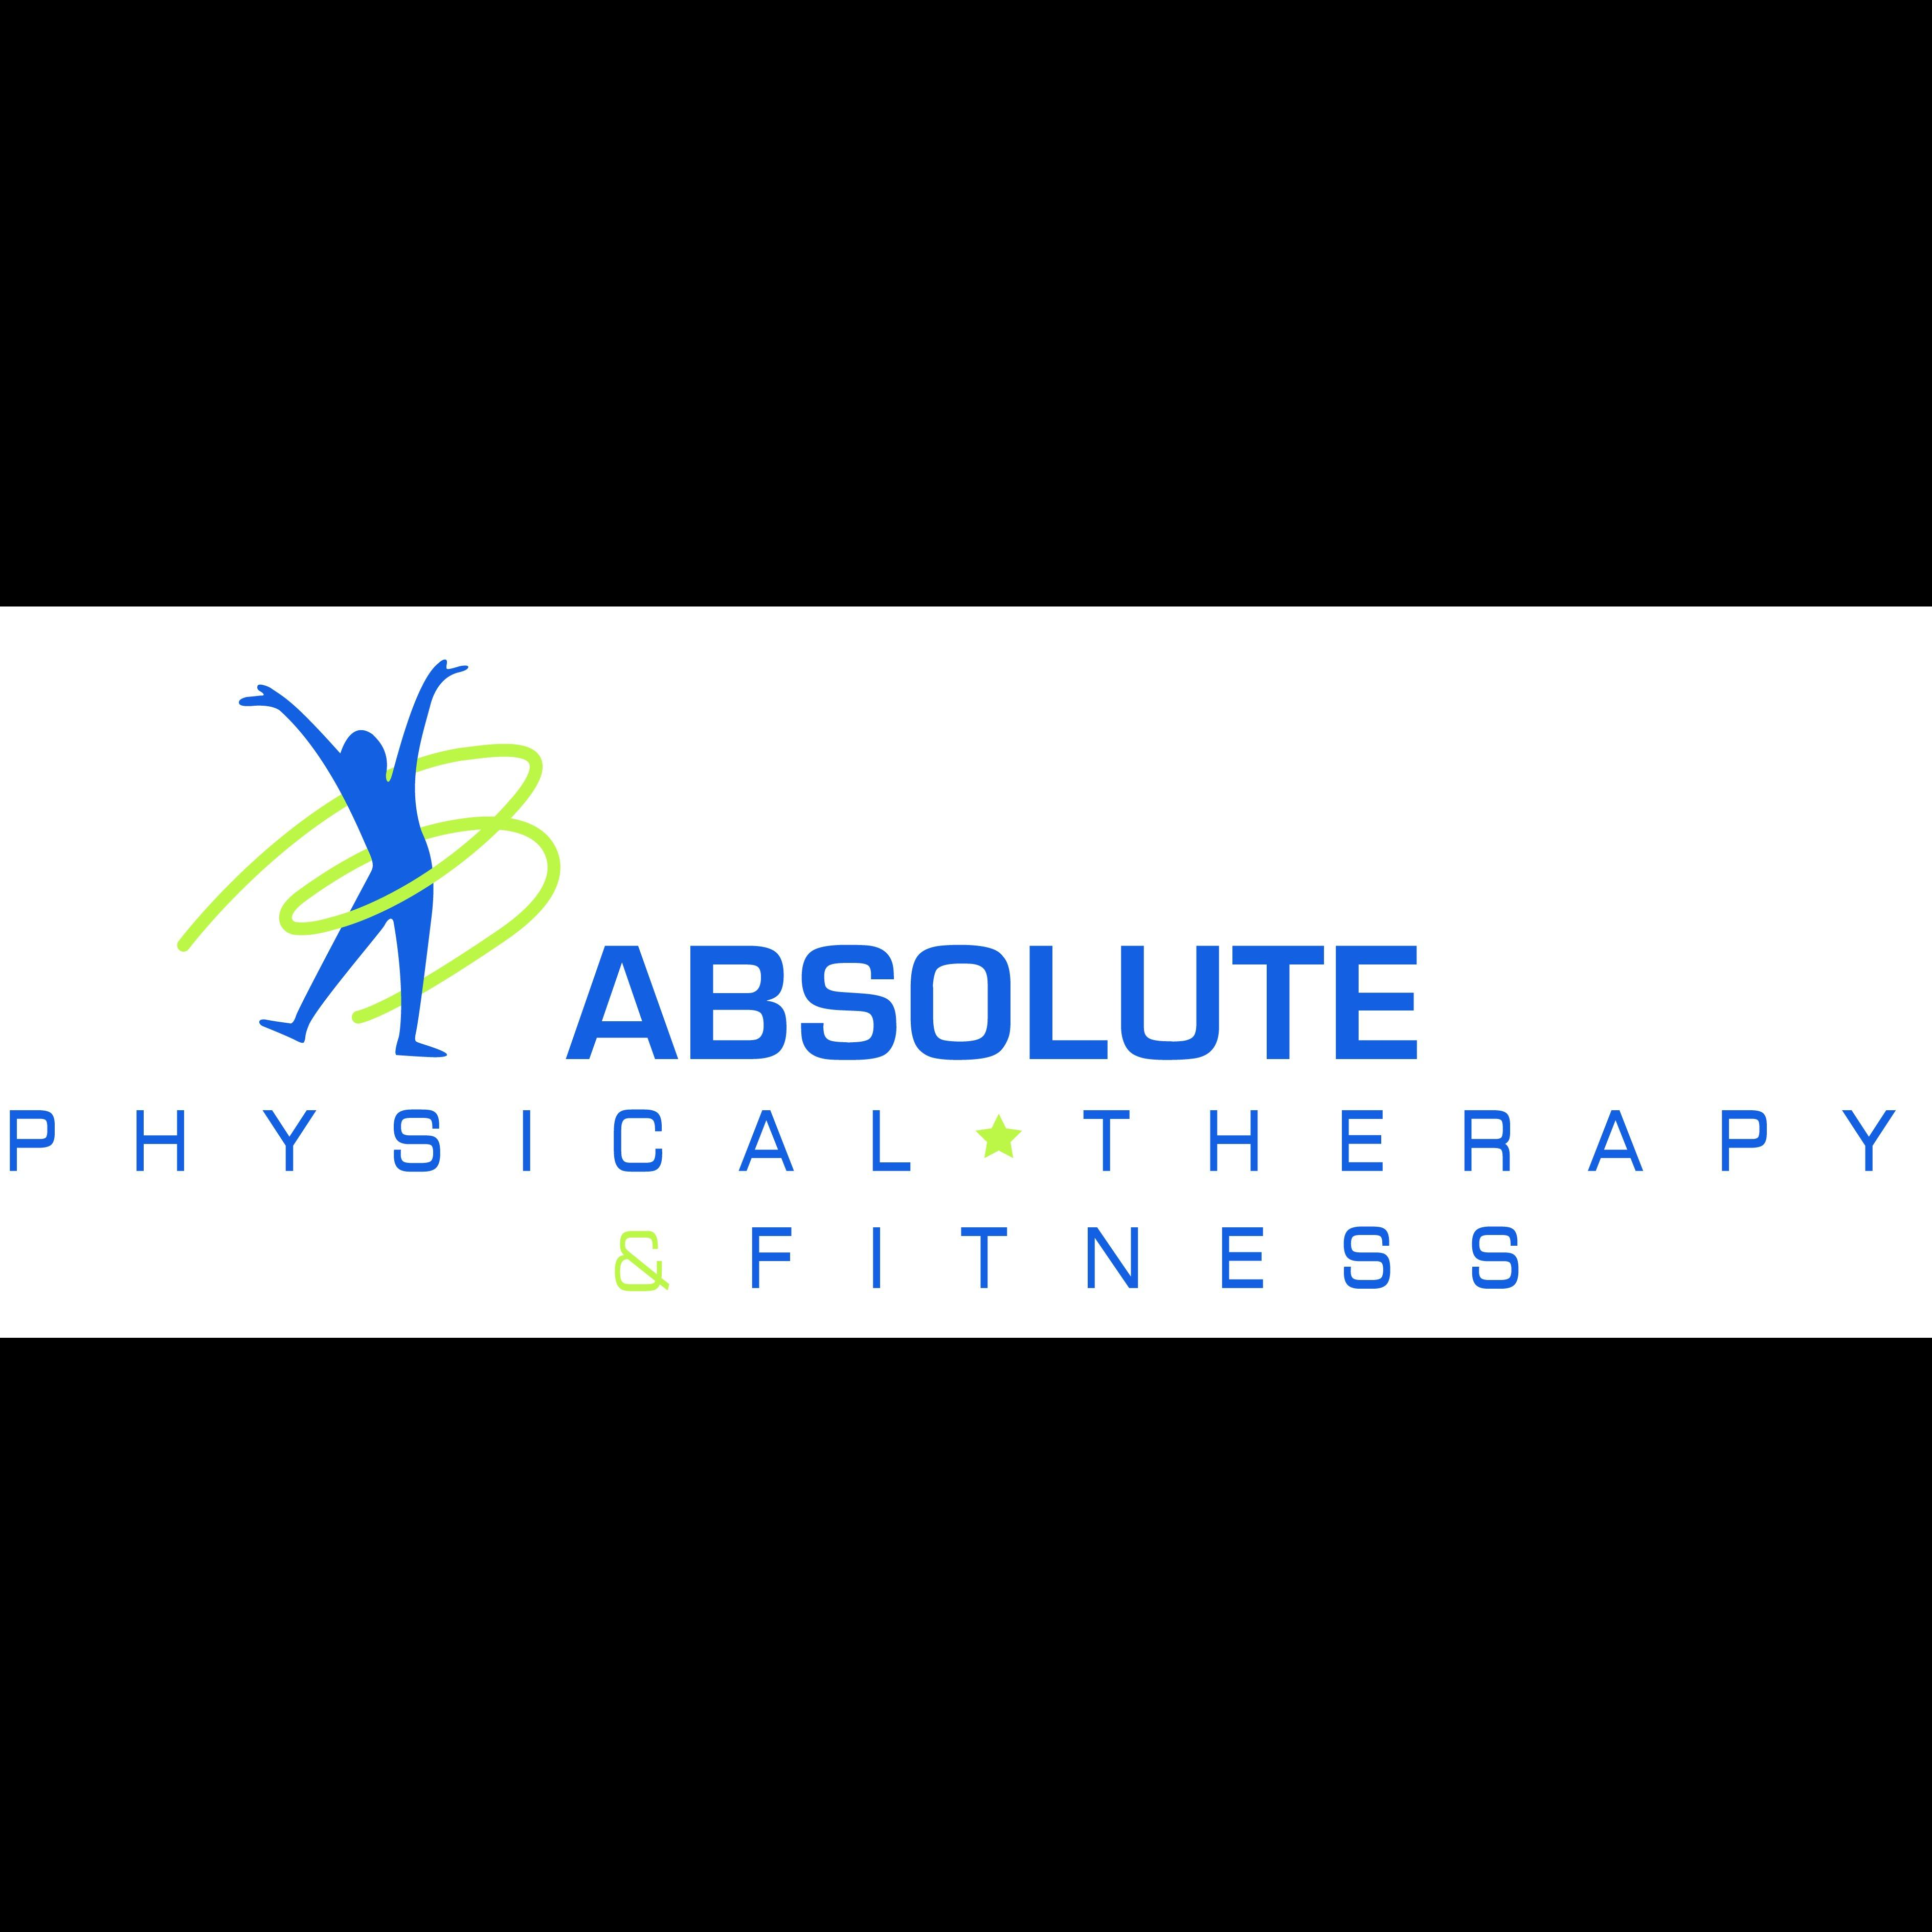 Absolute Physical Therapy and Fitness